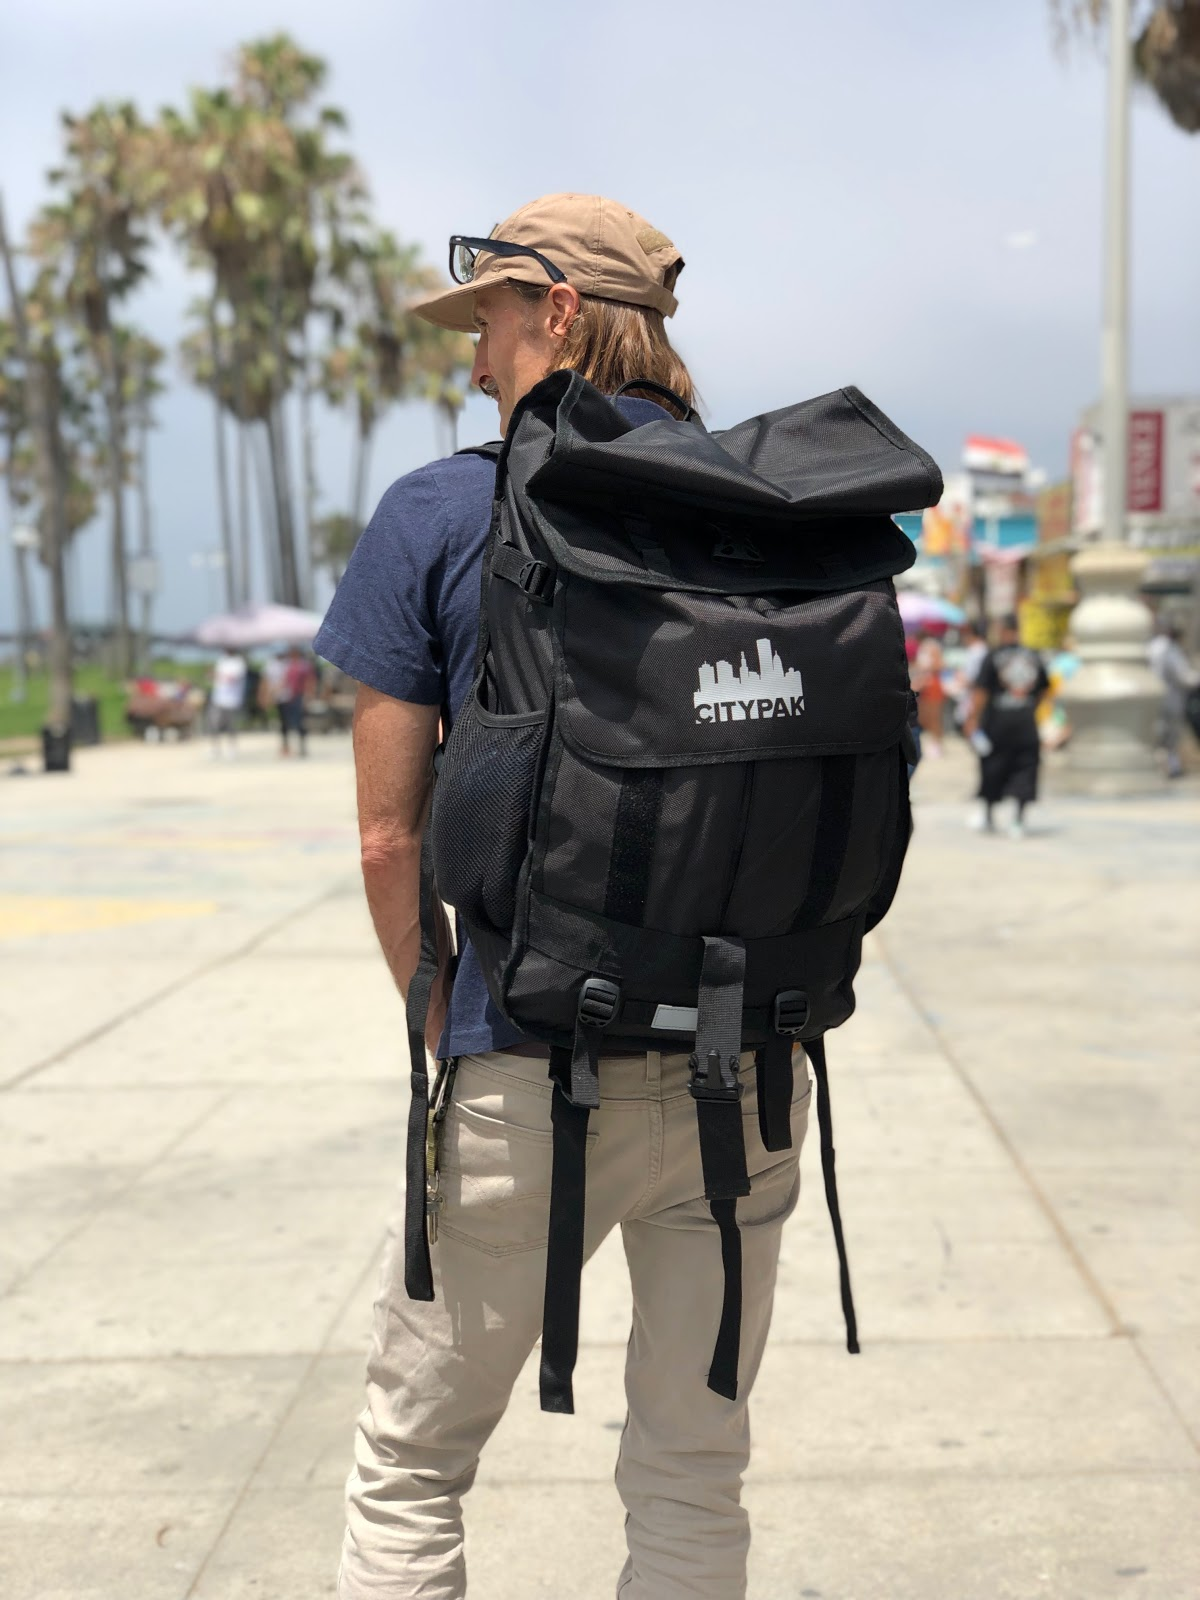 Dr. King with a Citypak on the Venice Beach Boardwalk. Citypak, a nonprofit, has donated countless backpacks for the unsheltered people on and near Venice Beach. Venice Family Clinic Photos.